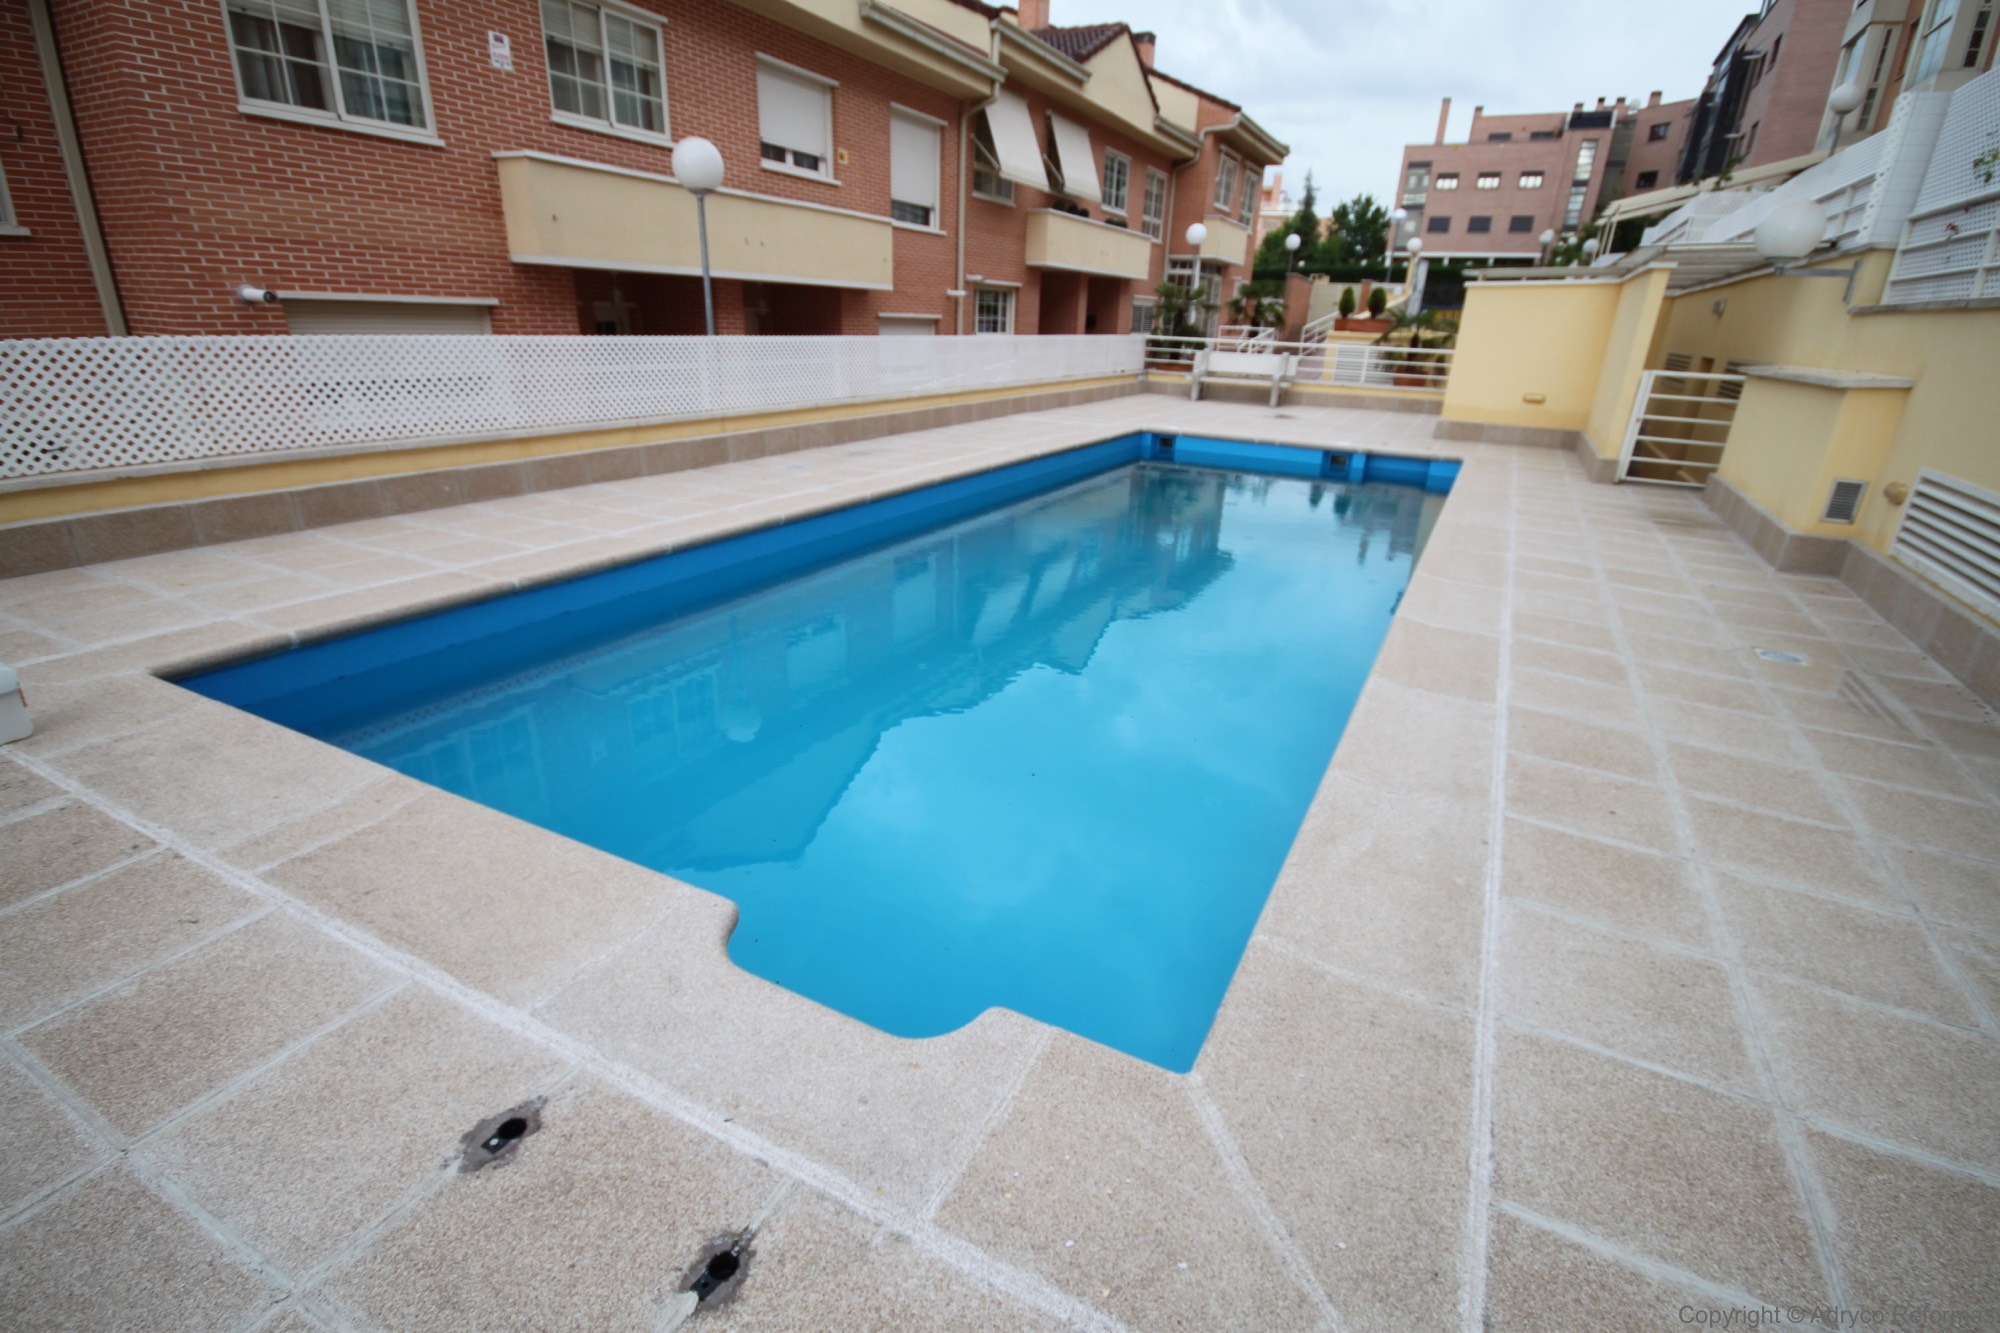 Piscinas y exteriores reforma 3 for Piedra artificial para piscinas